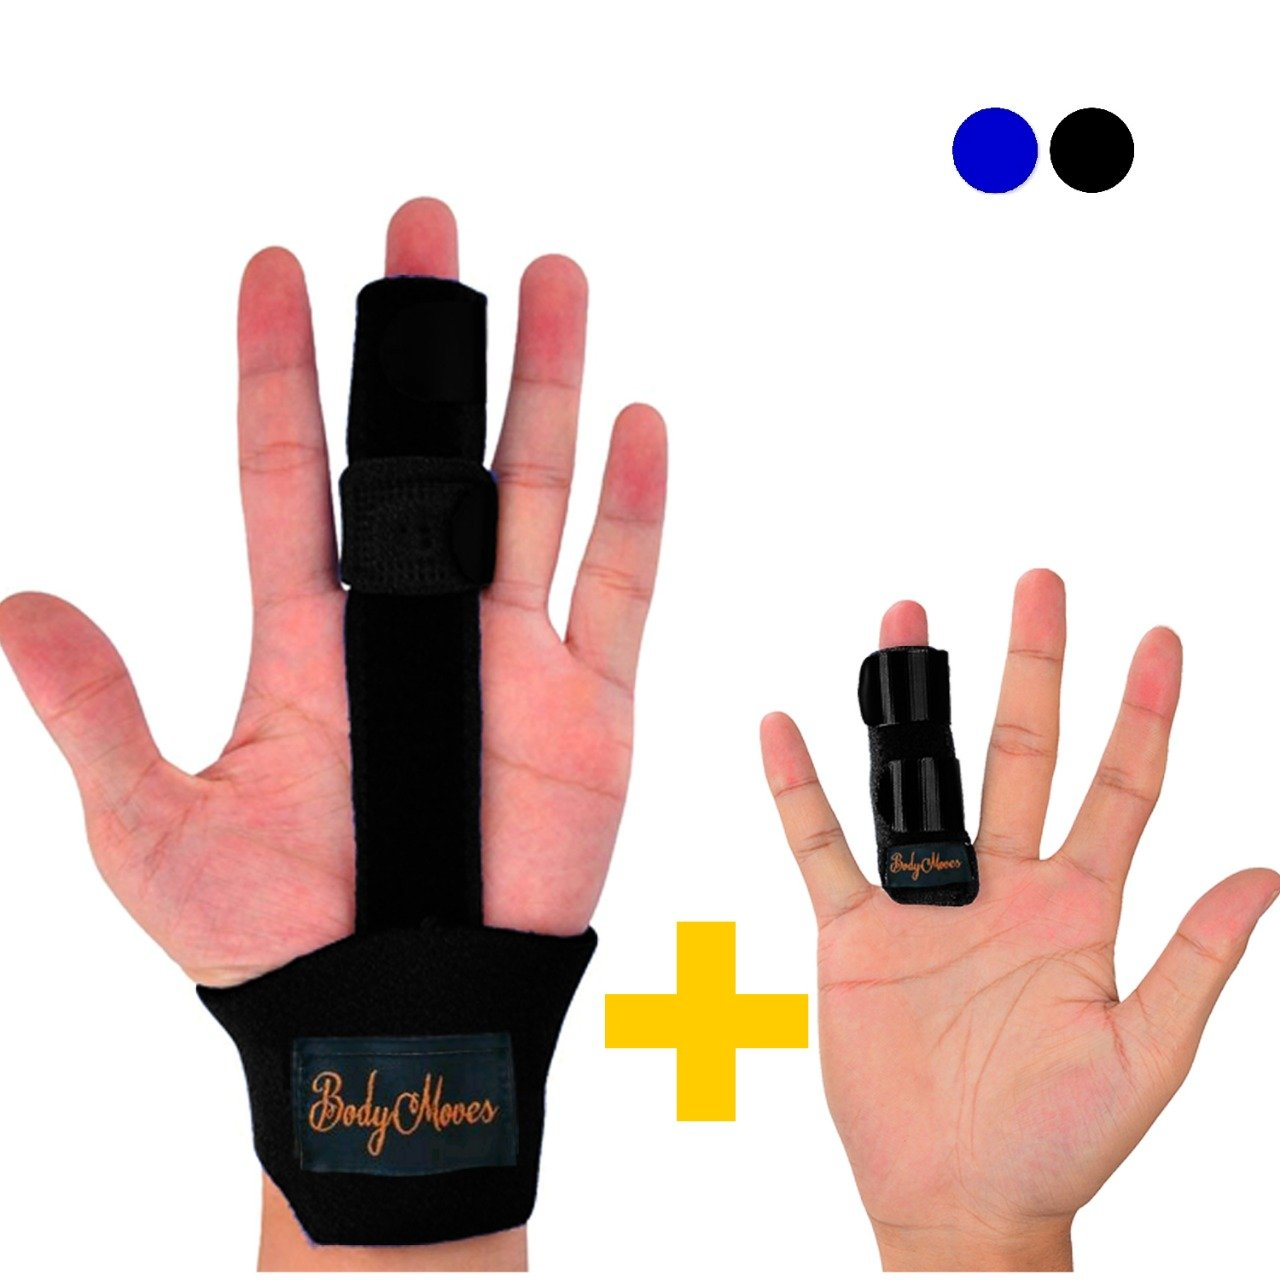 BodyMoves Finger Splint and Finger Extension Splint Trigger Finger Mallet Finger Broken Finger Rheumatoid Arthritis Post Operative Care Finger Knuckle Immobilization Injury (Midnight Black)